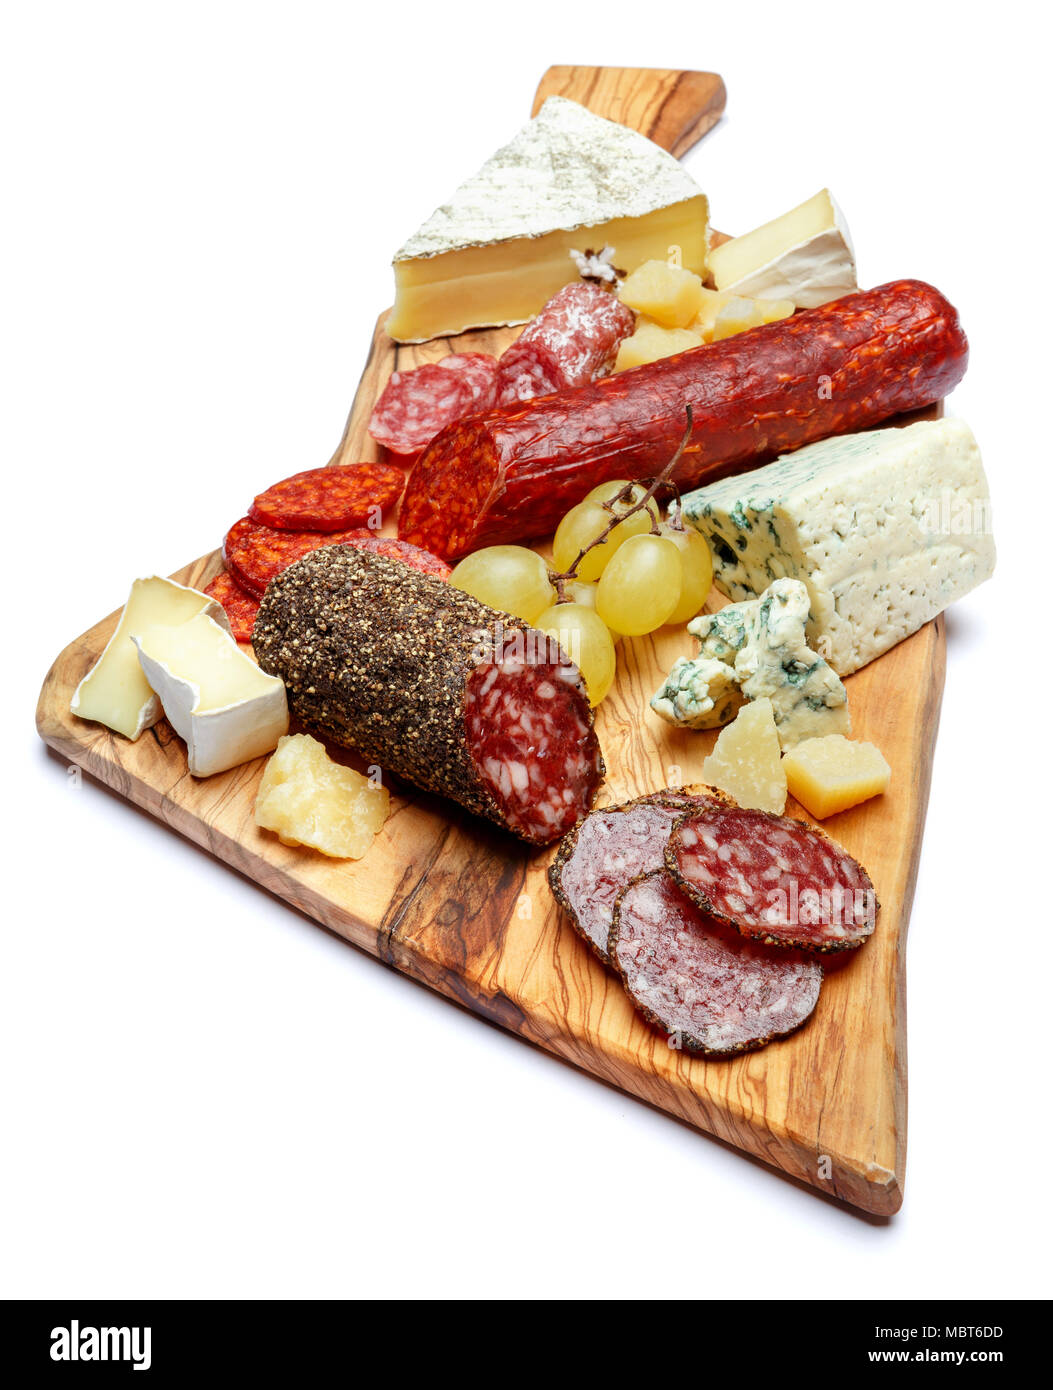 Cold meat cheese plate with salami sausage and cheese - Stock Image